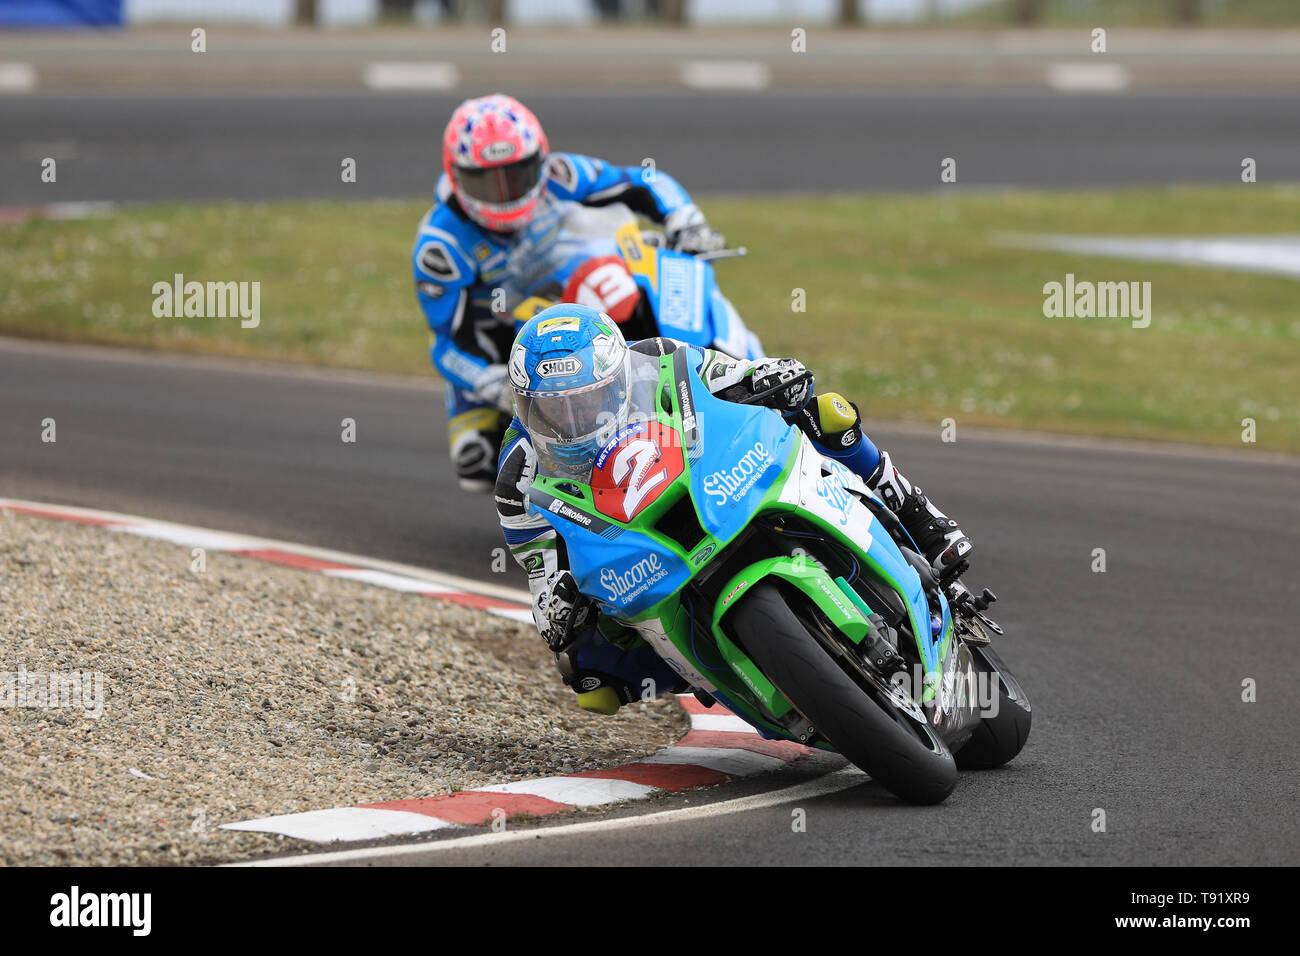 Portrush, Northern Ireland. 16th May, 2019. International North West 200 Motorcycle road racing, Thursday practice and evening racing; Dean Harrison went 6th fastest on the Silicone Engineering Racing Kawasaki during the SuperStock qualifying session Credit: Action Plus Sports/Alamy Live News - Stock Image